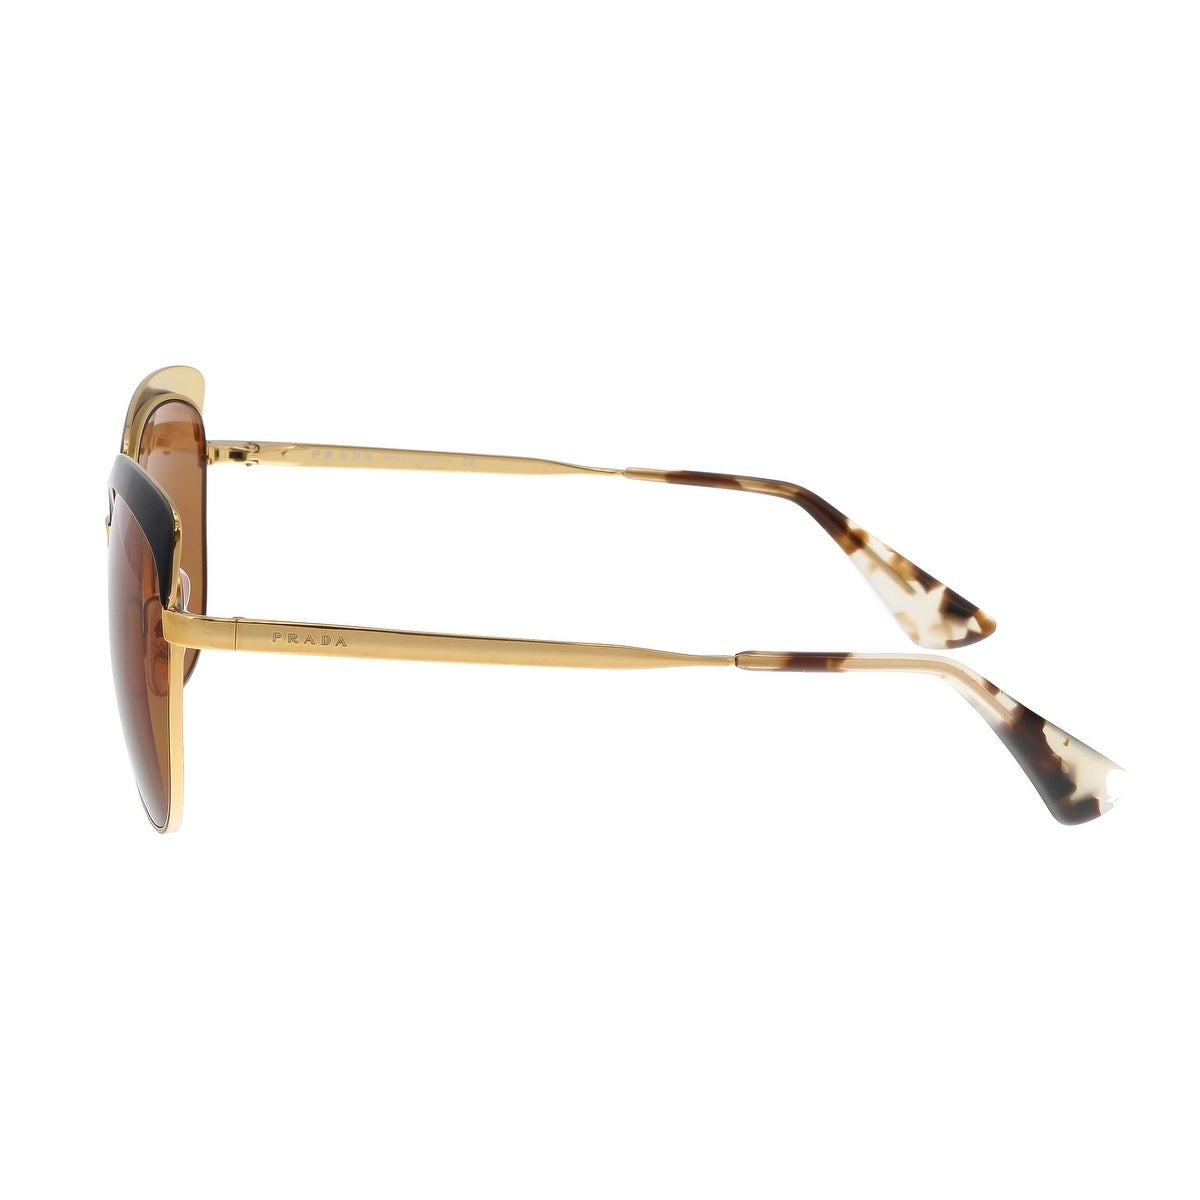 88bff52655 Shop Prada PR 51TS LAX6N0 Antique Gold Black Square Sunglasses - 56-17-140  - Free Shipping Today - Overstock - 18182564